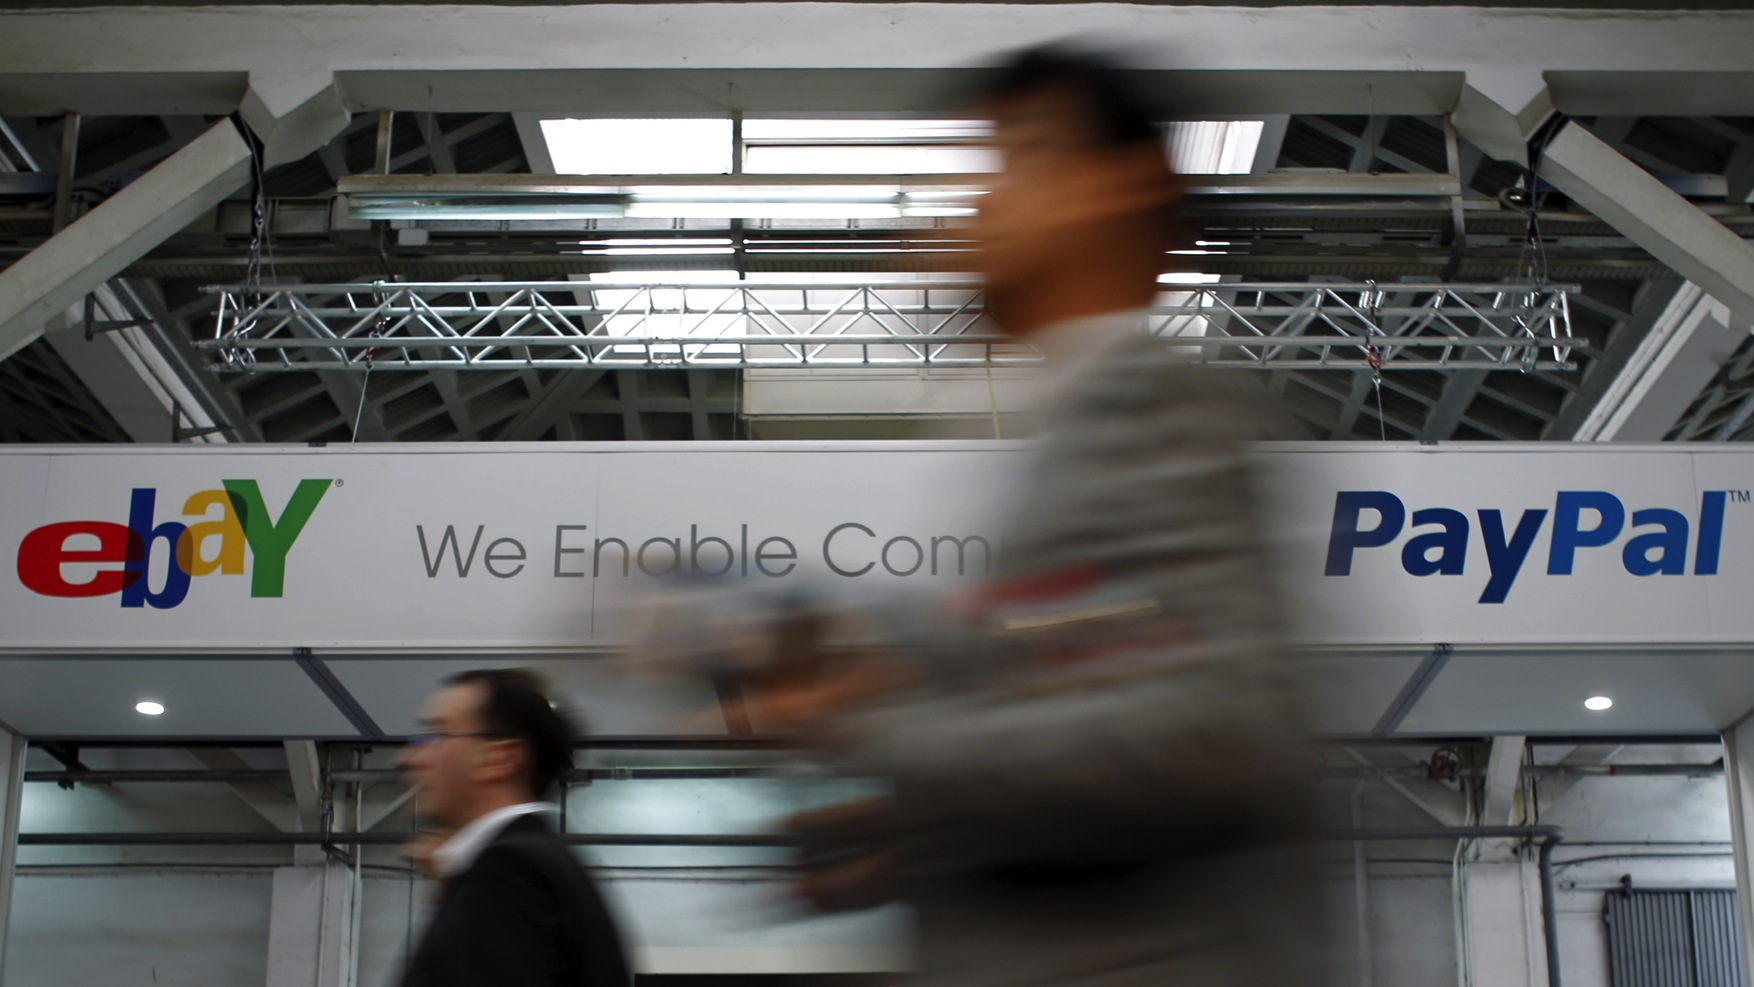 Visitors walk past an Ebay and PayPal banner at the Mobile World Congress in Barcelona February 28, 2012. The GSMA Mobile World Congress, representing the interests of the worldwide mobile communications industry, will take place from February 27 to March 1 in Barcelona.